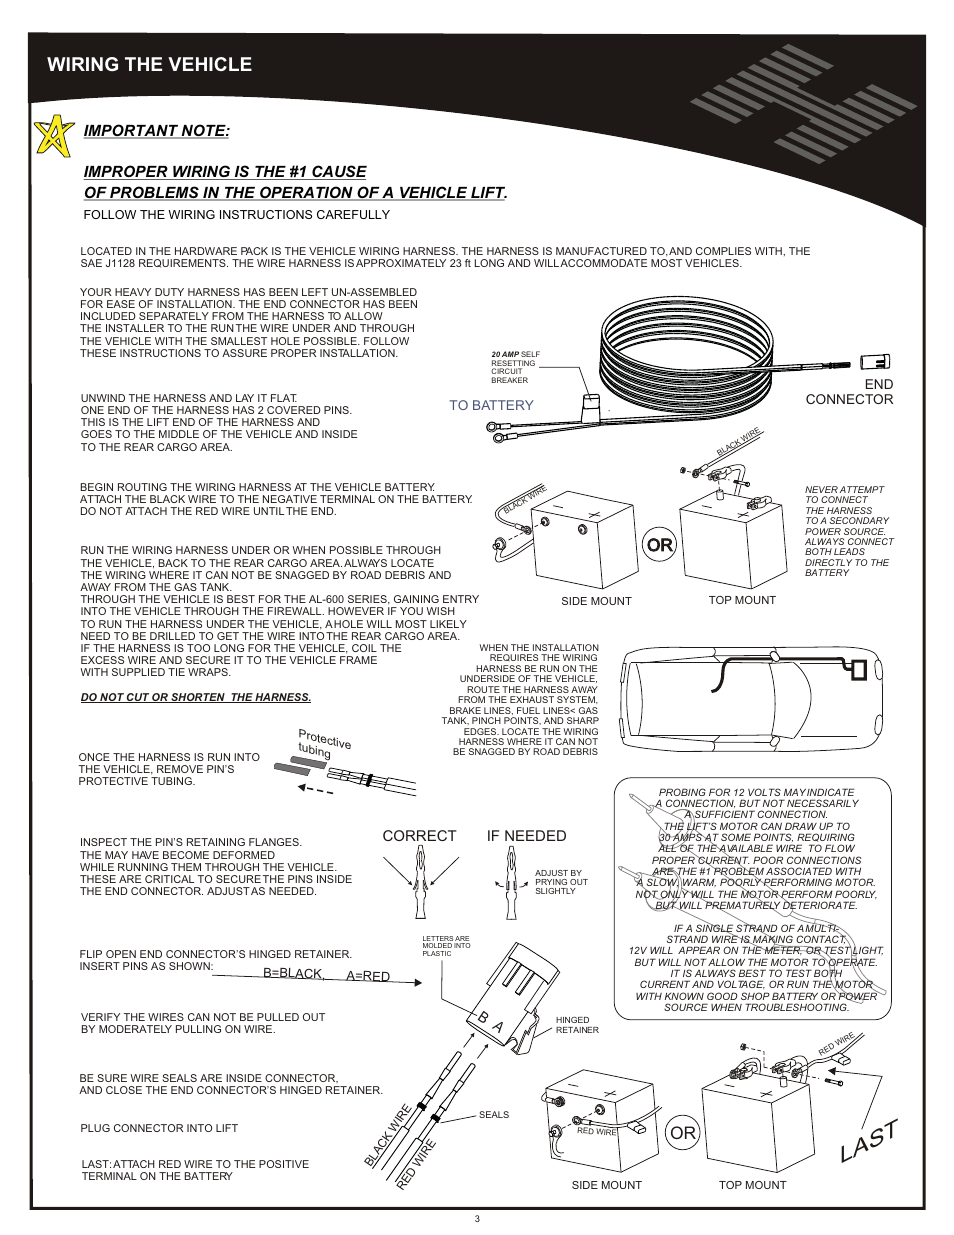 harmar vehicle wiring harness harmar image wiring harmar wiring harness connector harmar auto wiring diagram schematic on harmar vehicle wiring harness